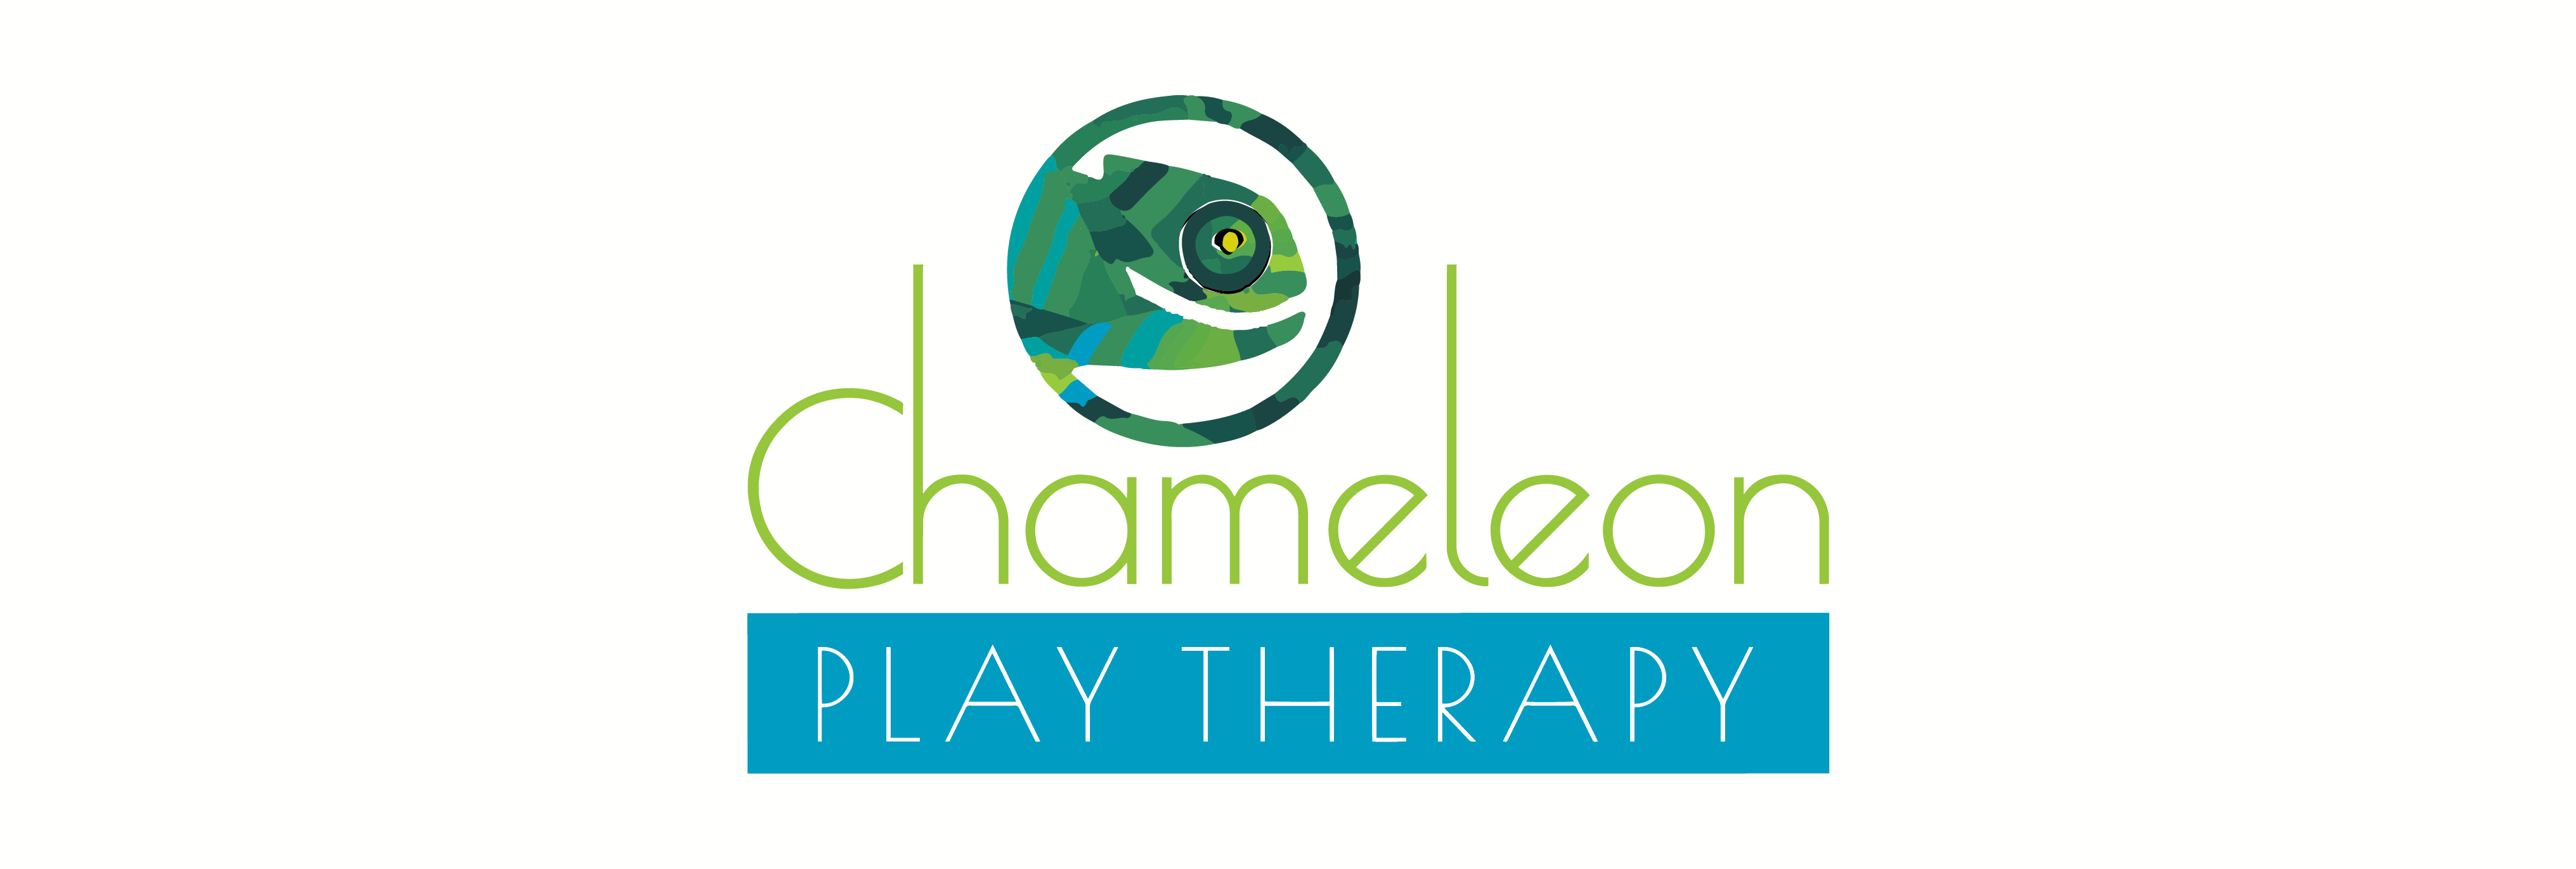 Chameleon Play Therapy | Odd Poppy Advertising Agency | Johannesburg | Clients